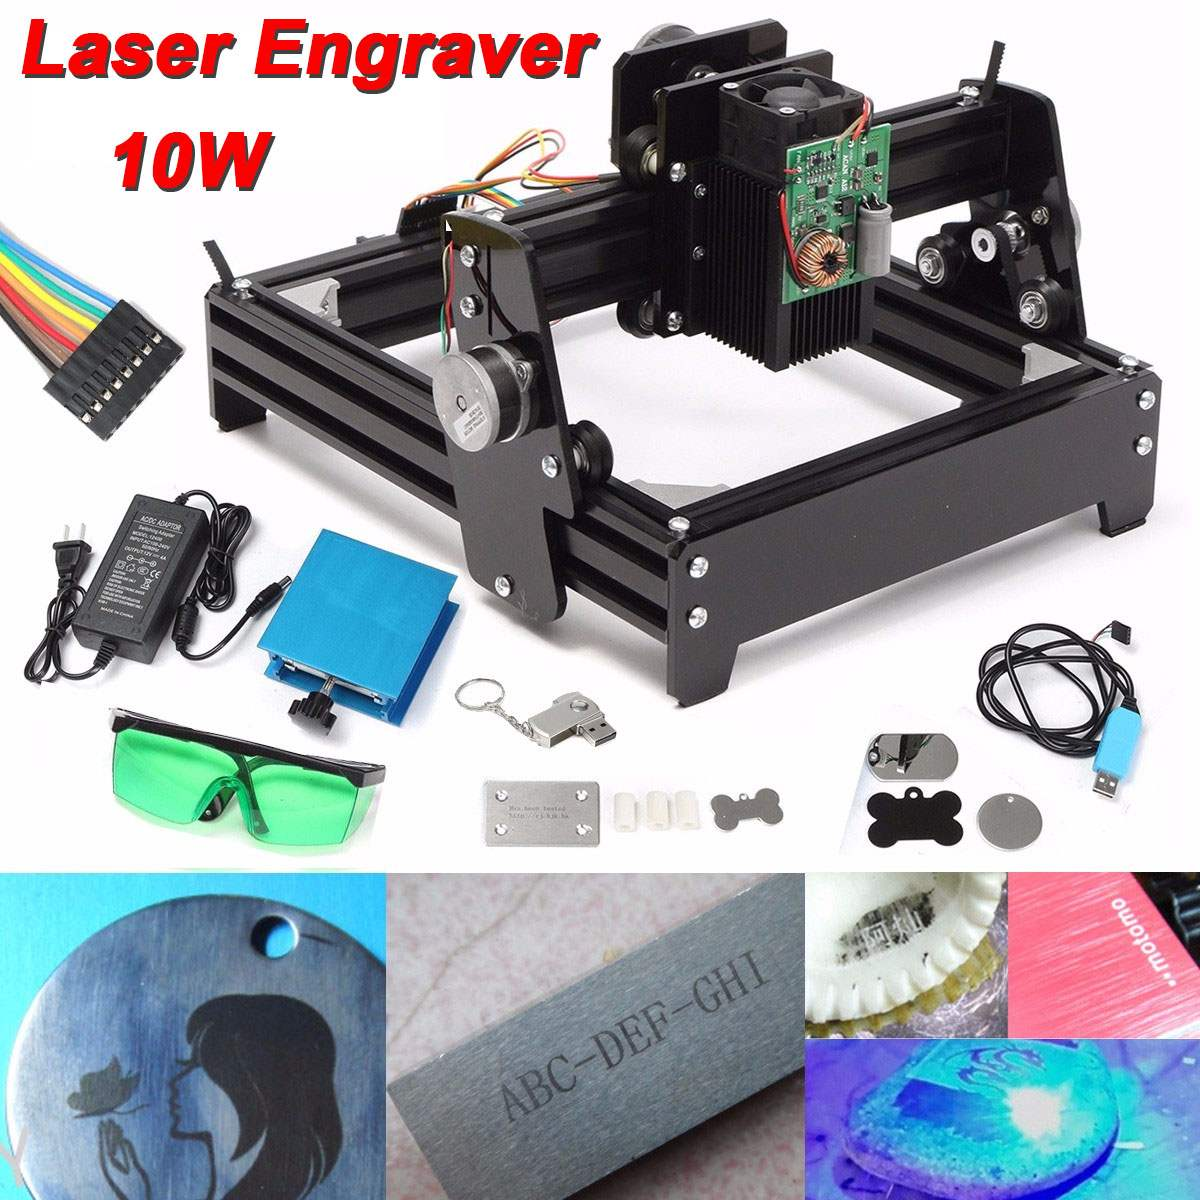 10W Laser USB Desktop 10000mW CNC Laser Engraver DIY Marking Machine For Metal Stone Wood Engraving Area 14 x 20cm 10w laser engraver metal laser marking machine cnc router with 140 200mm engraving area for stainless steel aluminum marking